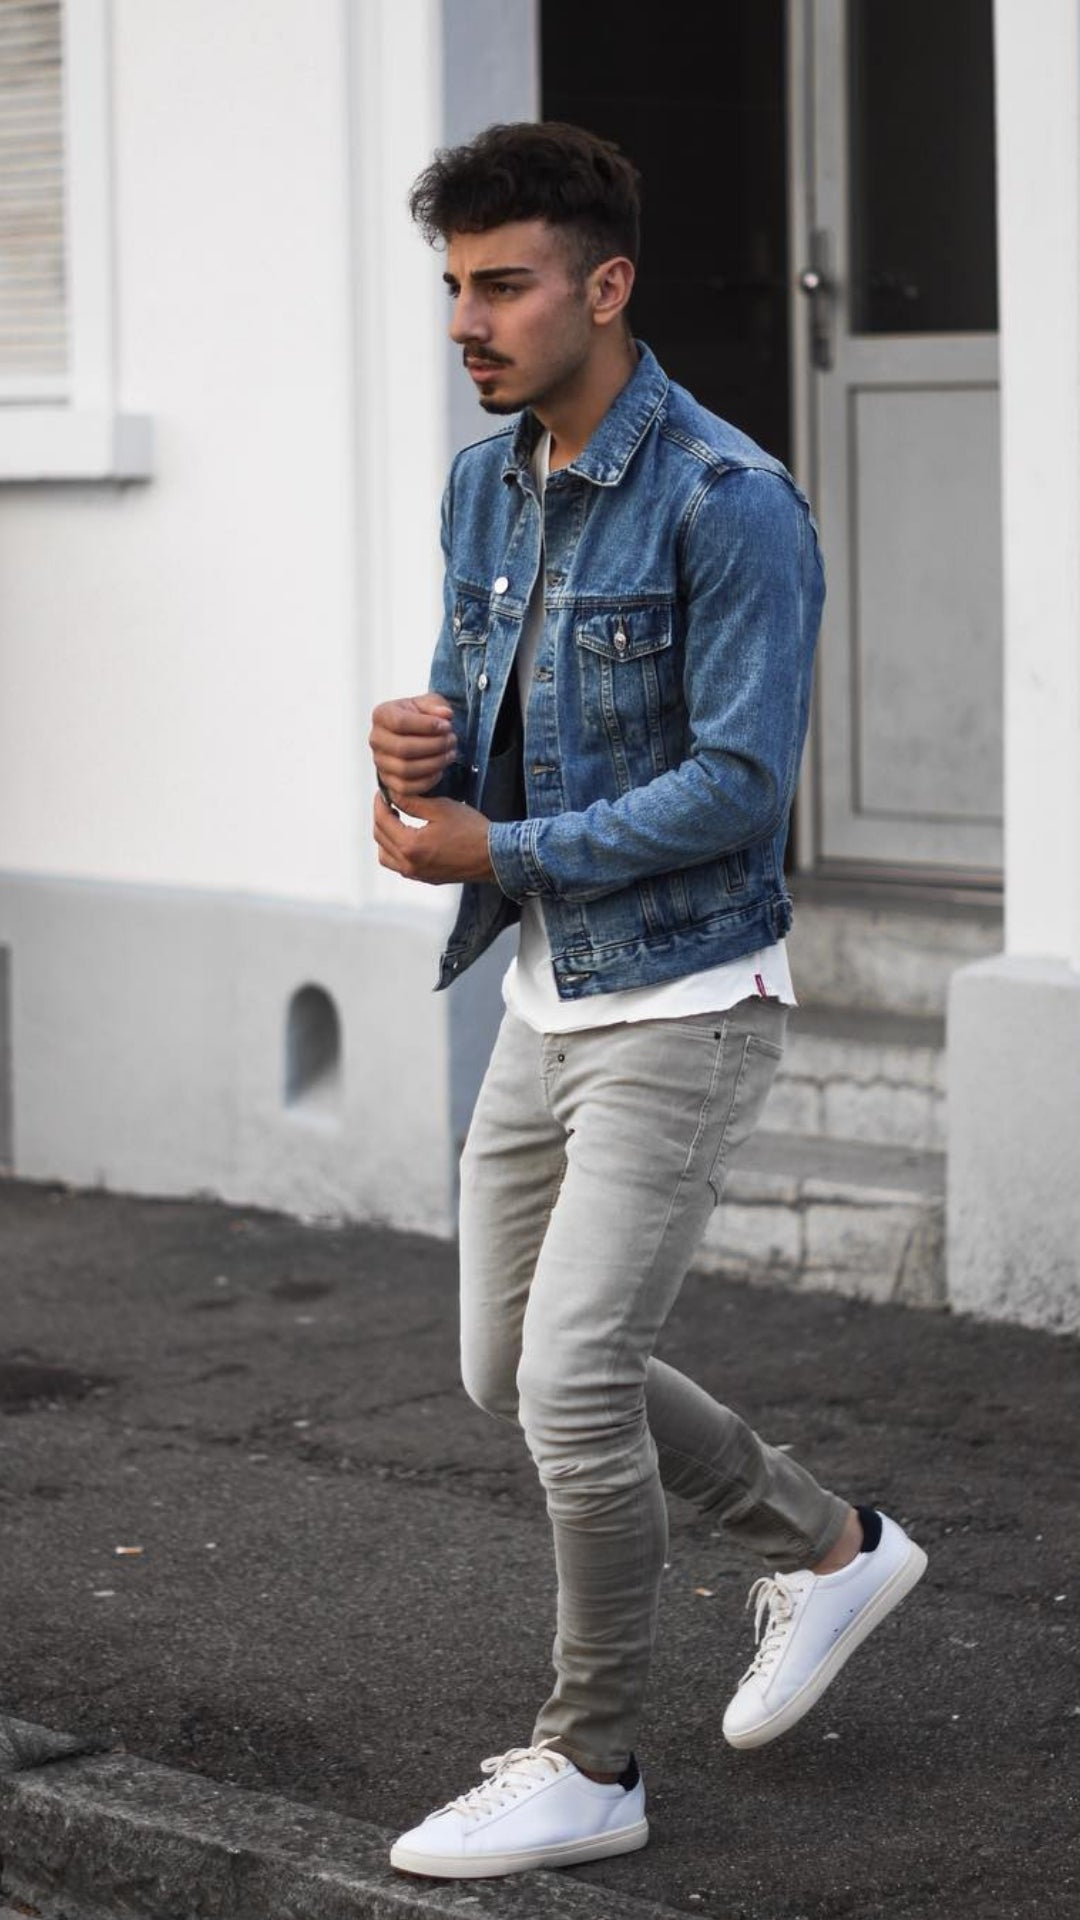 5 Casual Outfits For Young Guys #casual #outfits #mensfashion #streetstyle